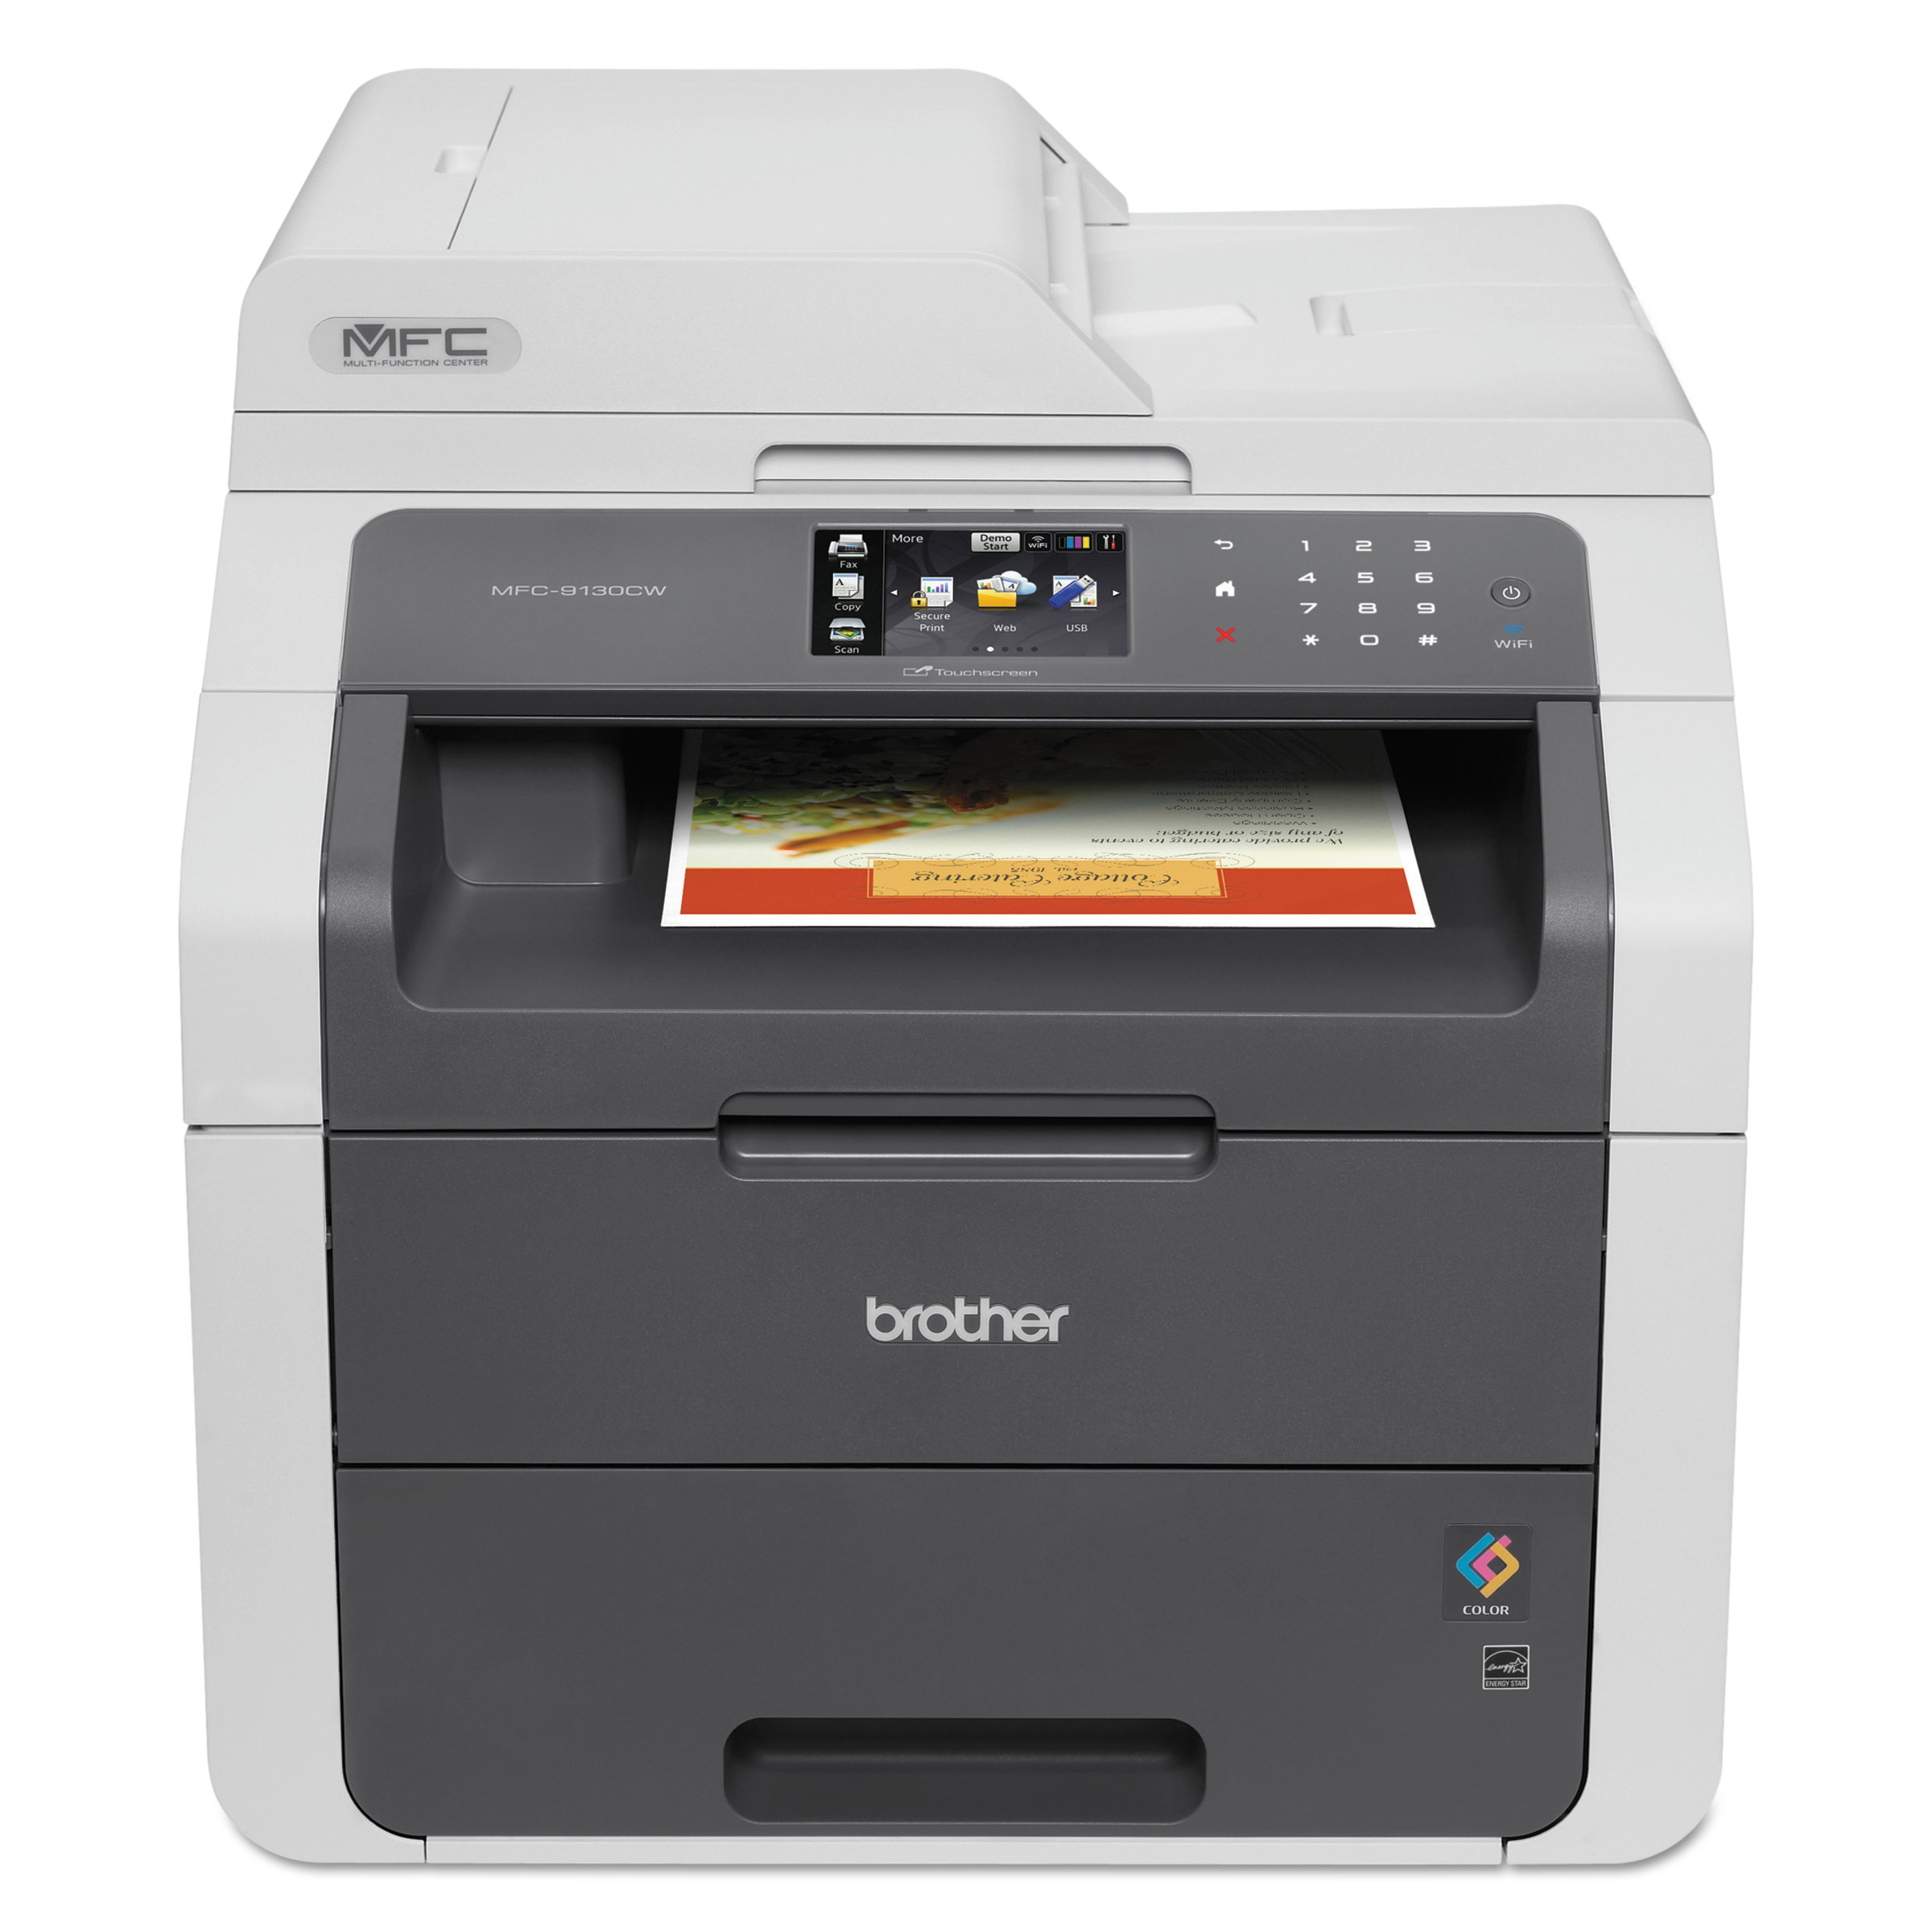 Image result for Brother Wireless digital color all-in-one copies, faxes, prints and scans.